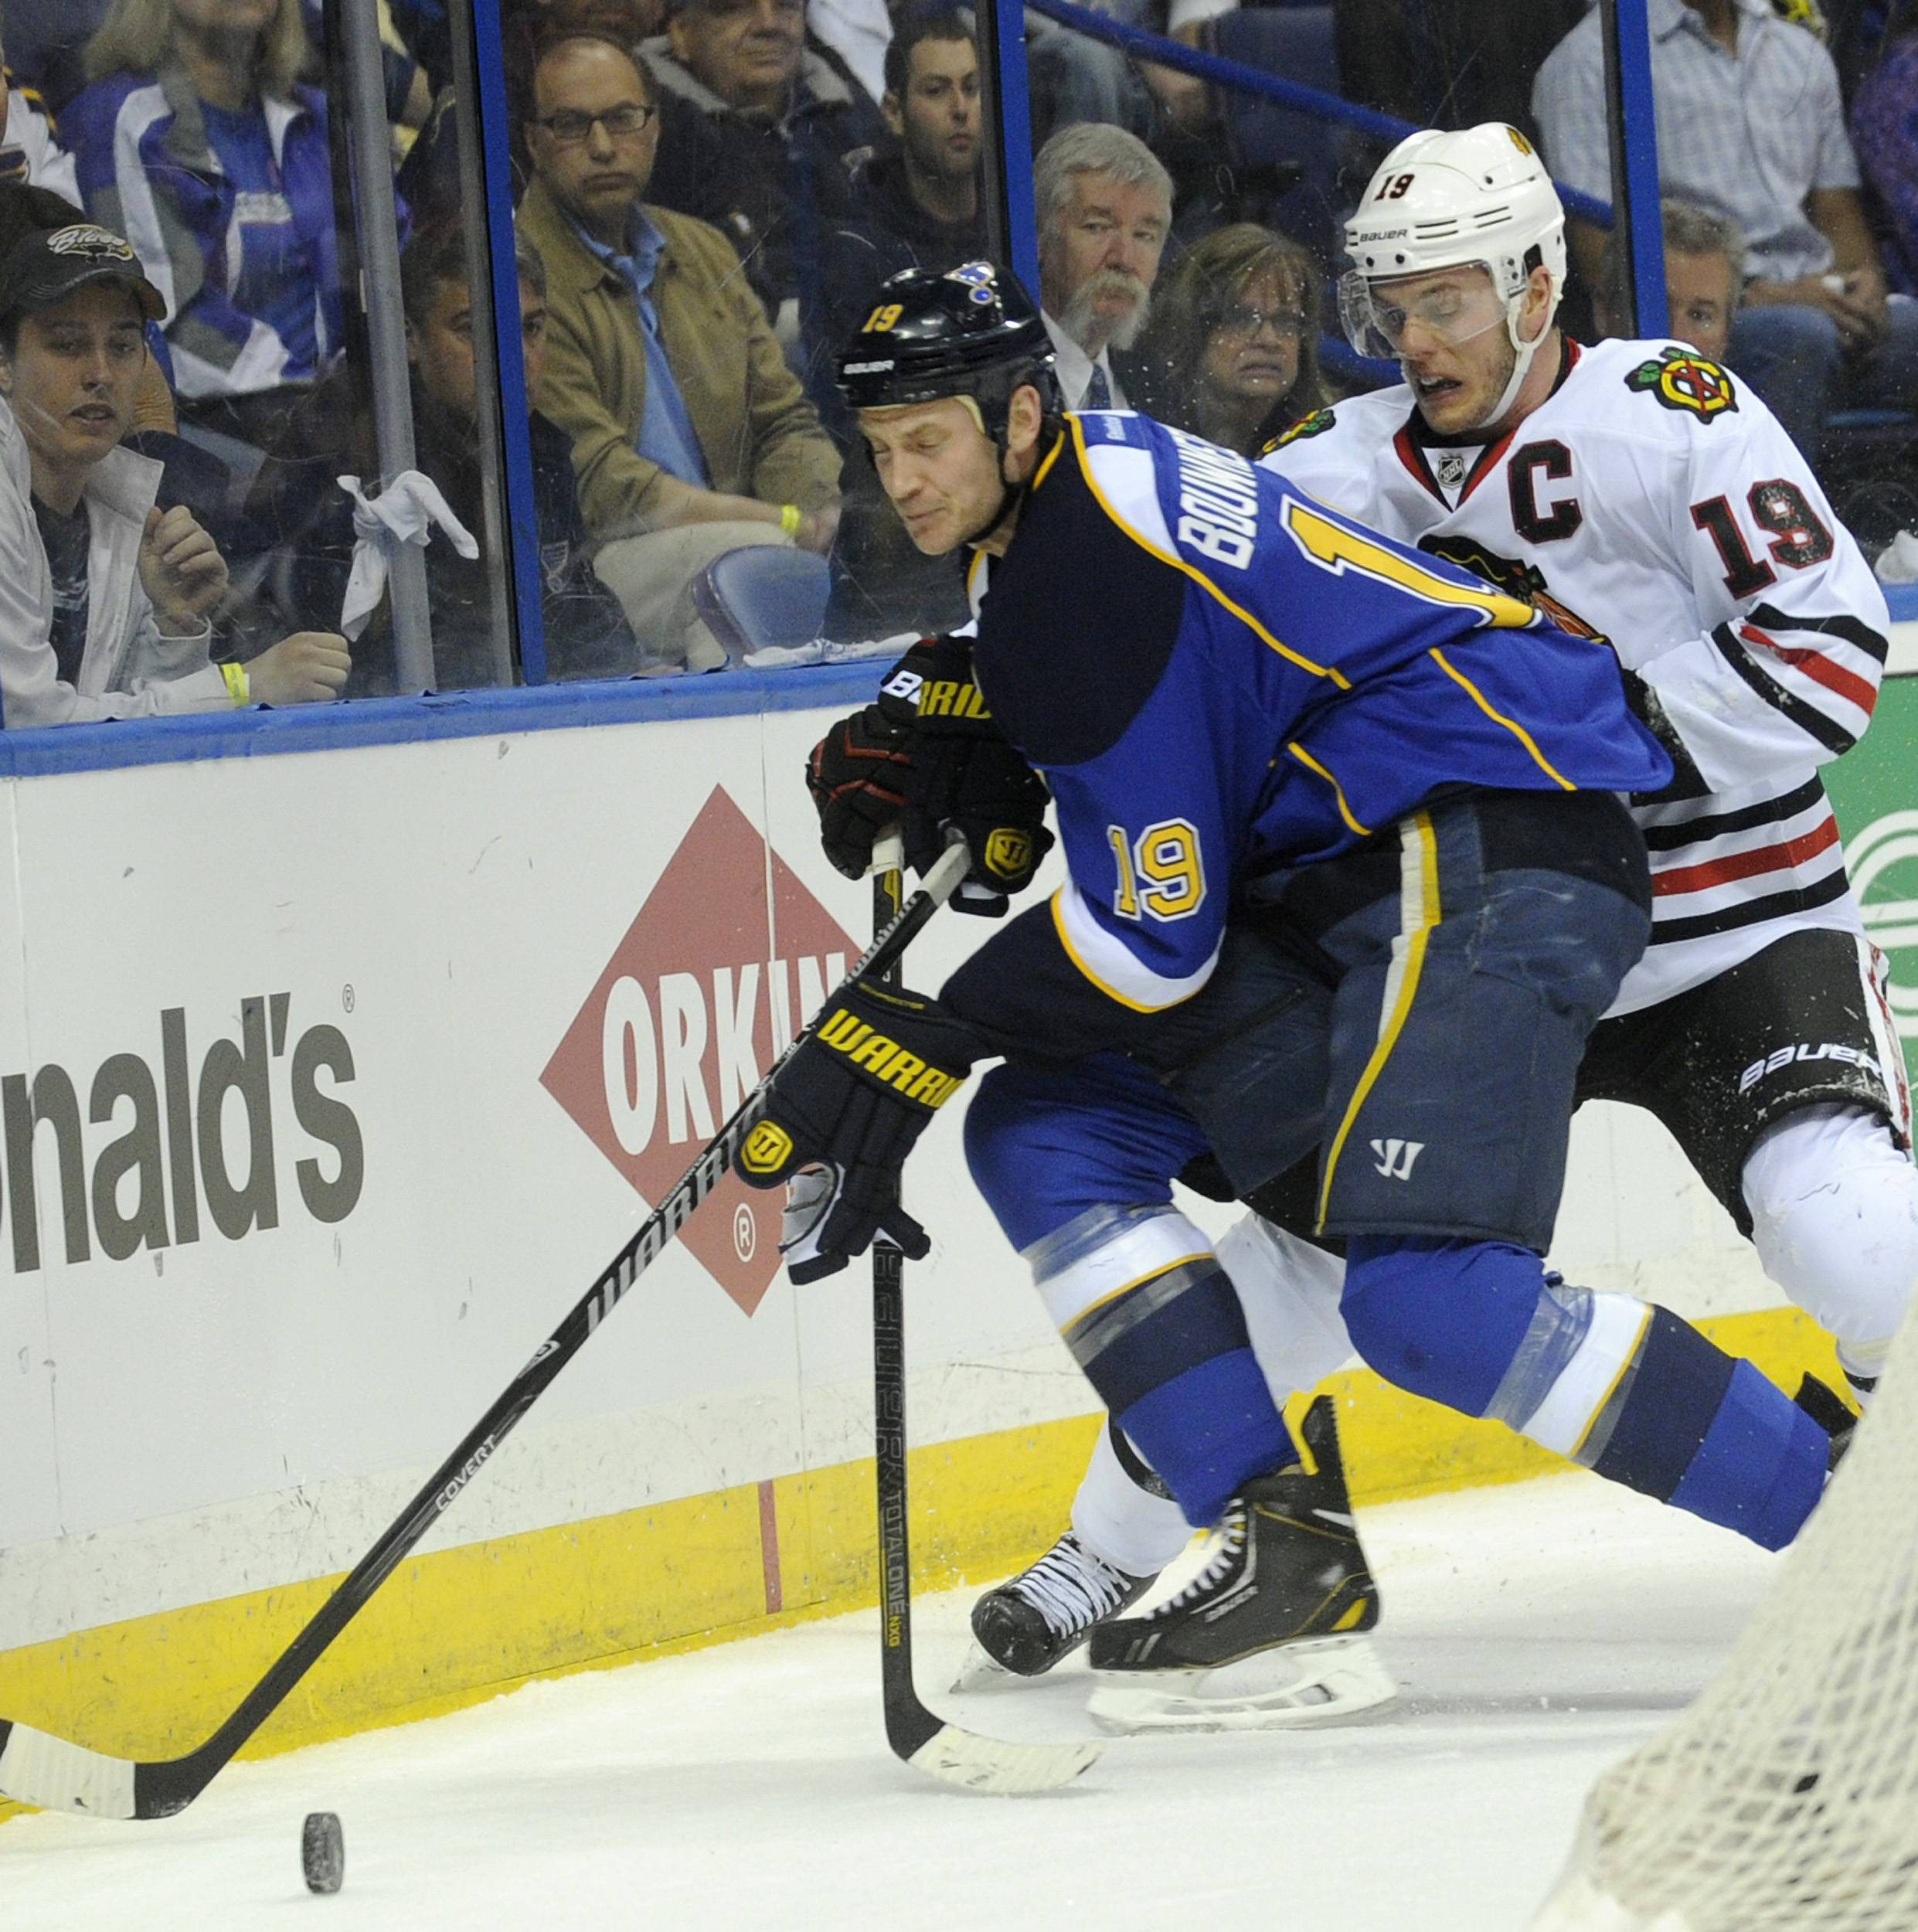 St. Louis Blues' Jay Bouwmeester, left, and Chicago Blackhawks' Jonathan Toews, right, battle for the puck during the first period in Game 2 of a first-round NHL hockey playoff series on Saturday, April 19, 2014, in St. Louis.